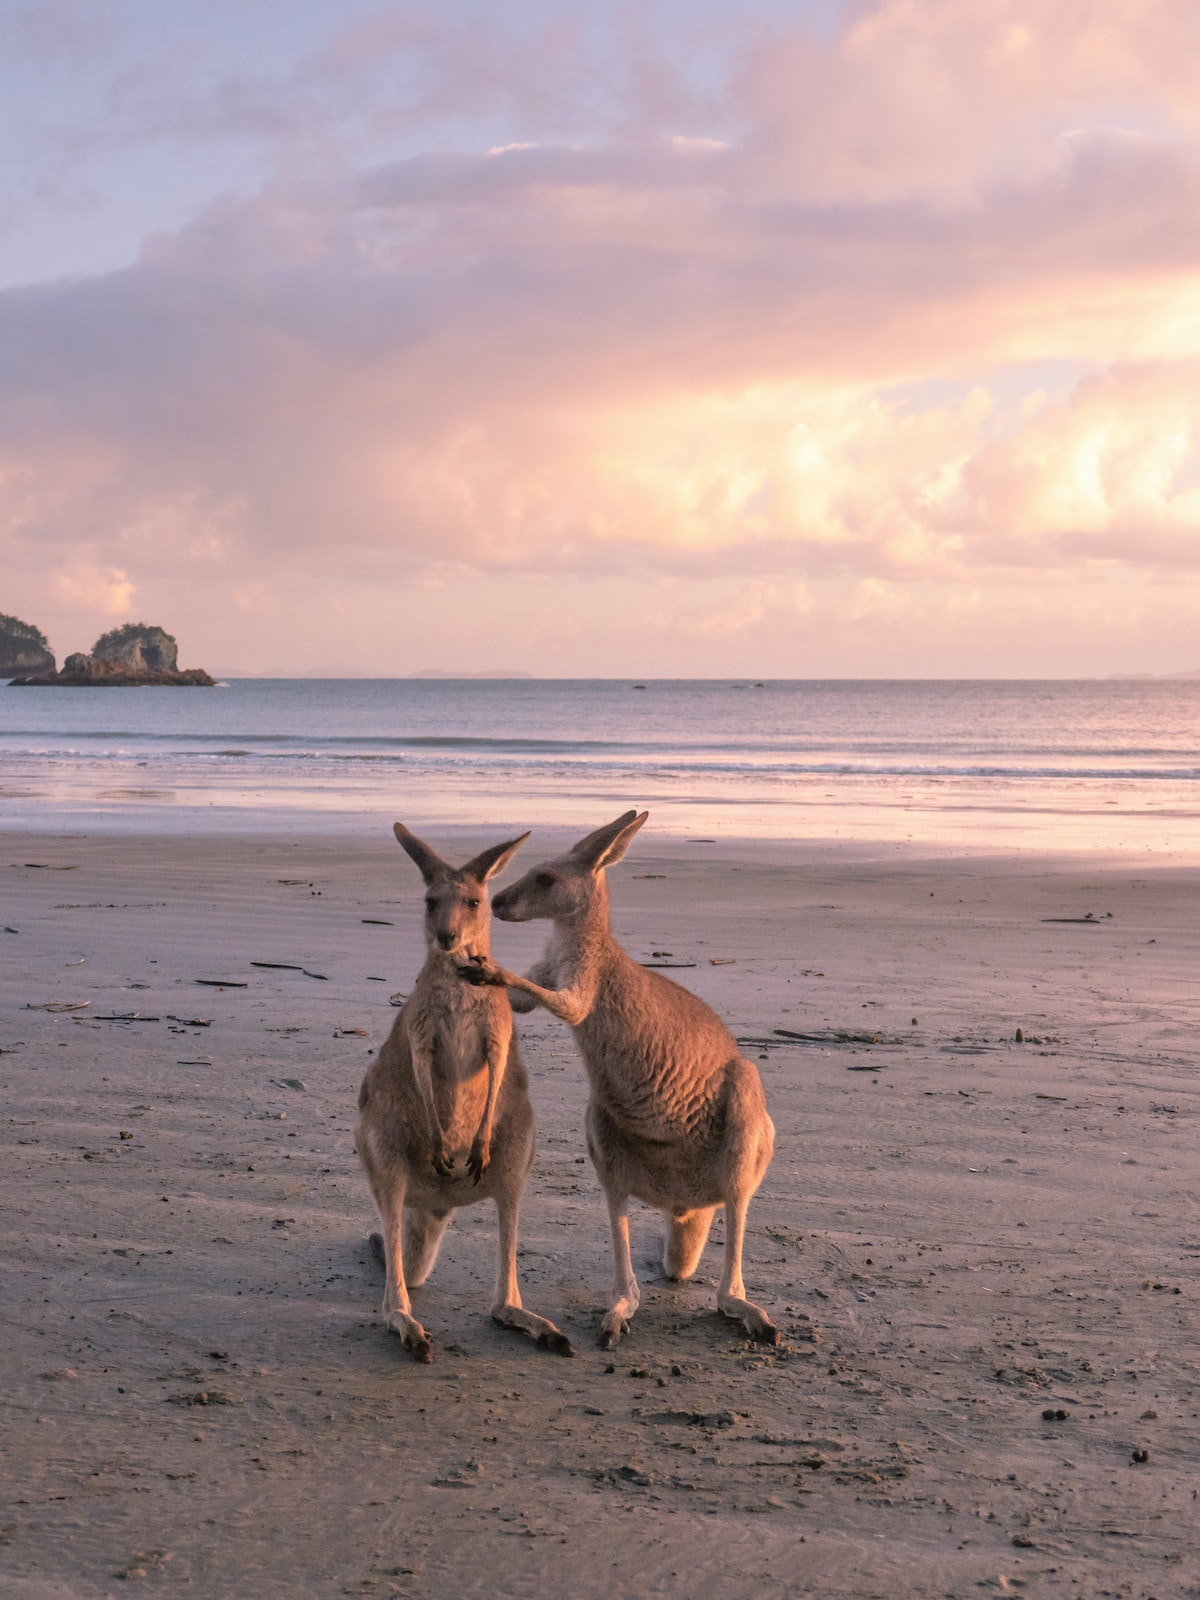 Two wallabies stand on a beach at sunrise.